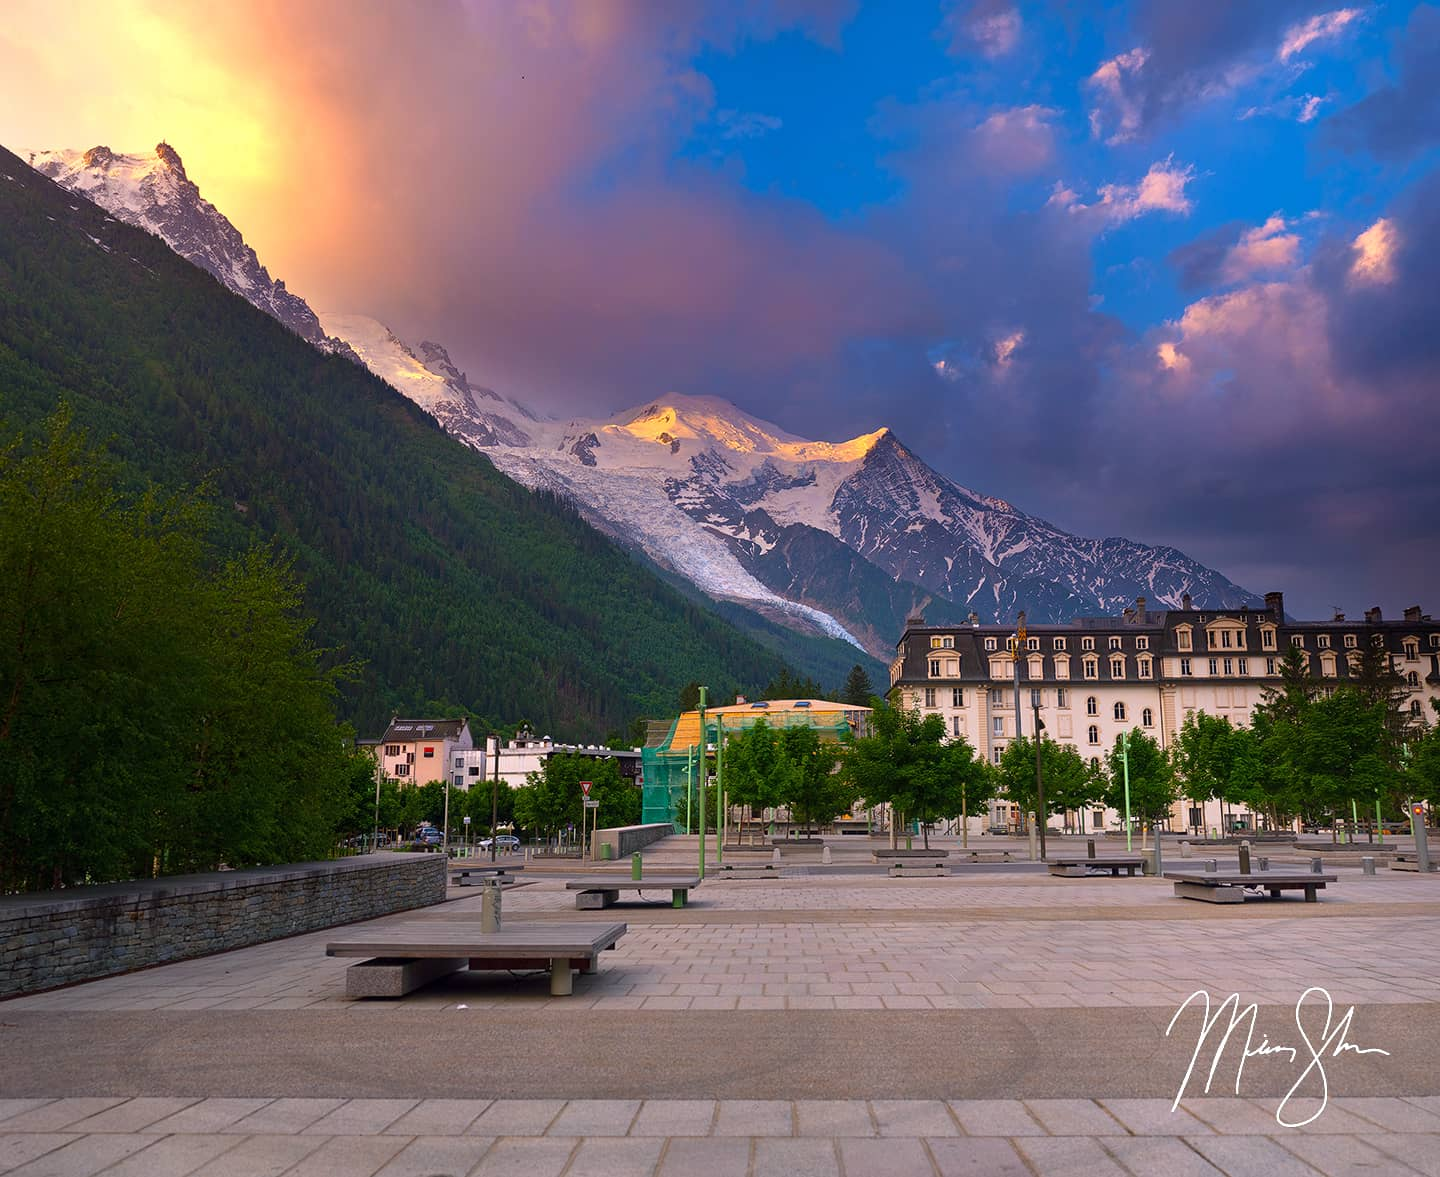 Colorful Chamonix - Chamonix-Mont Blanc, France